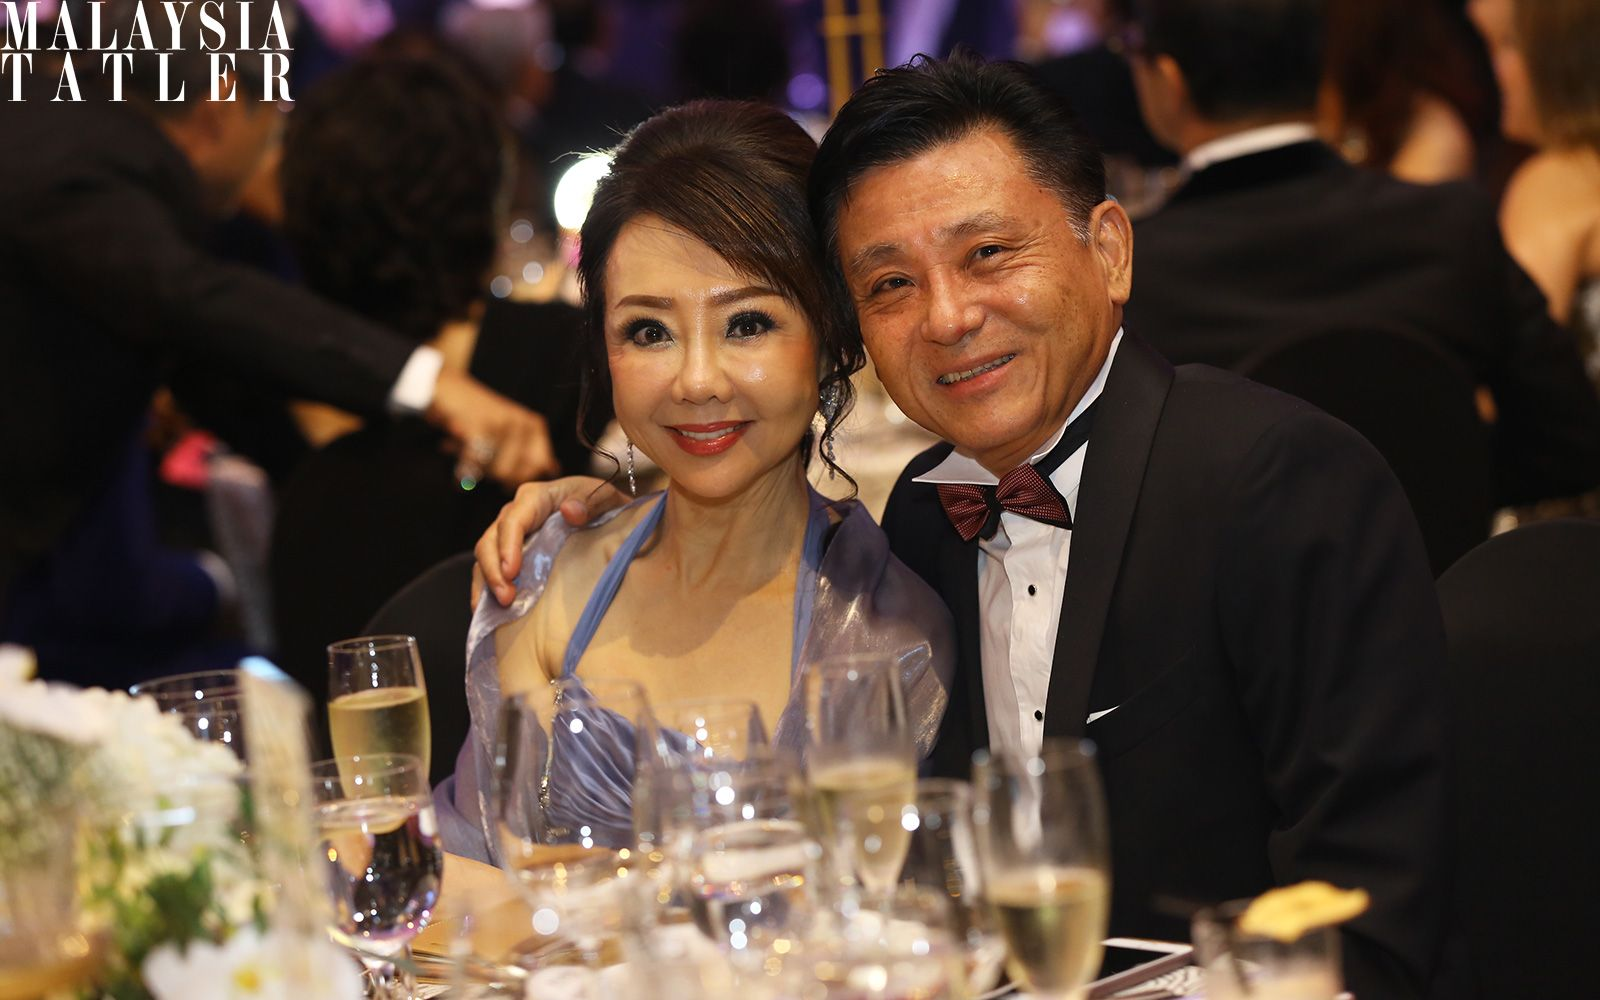 Sylvia Chew and Law Chin Wat